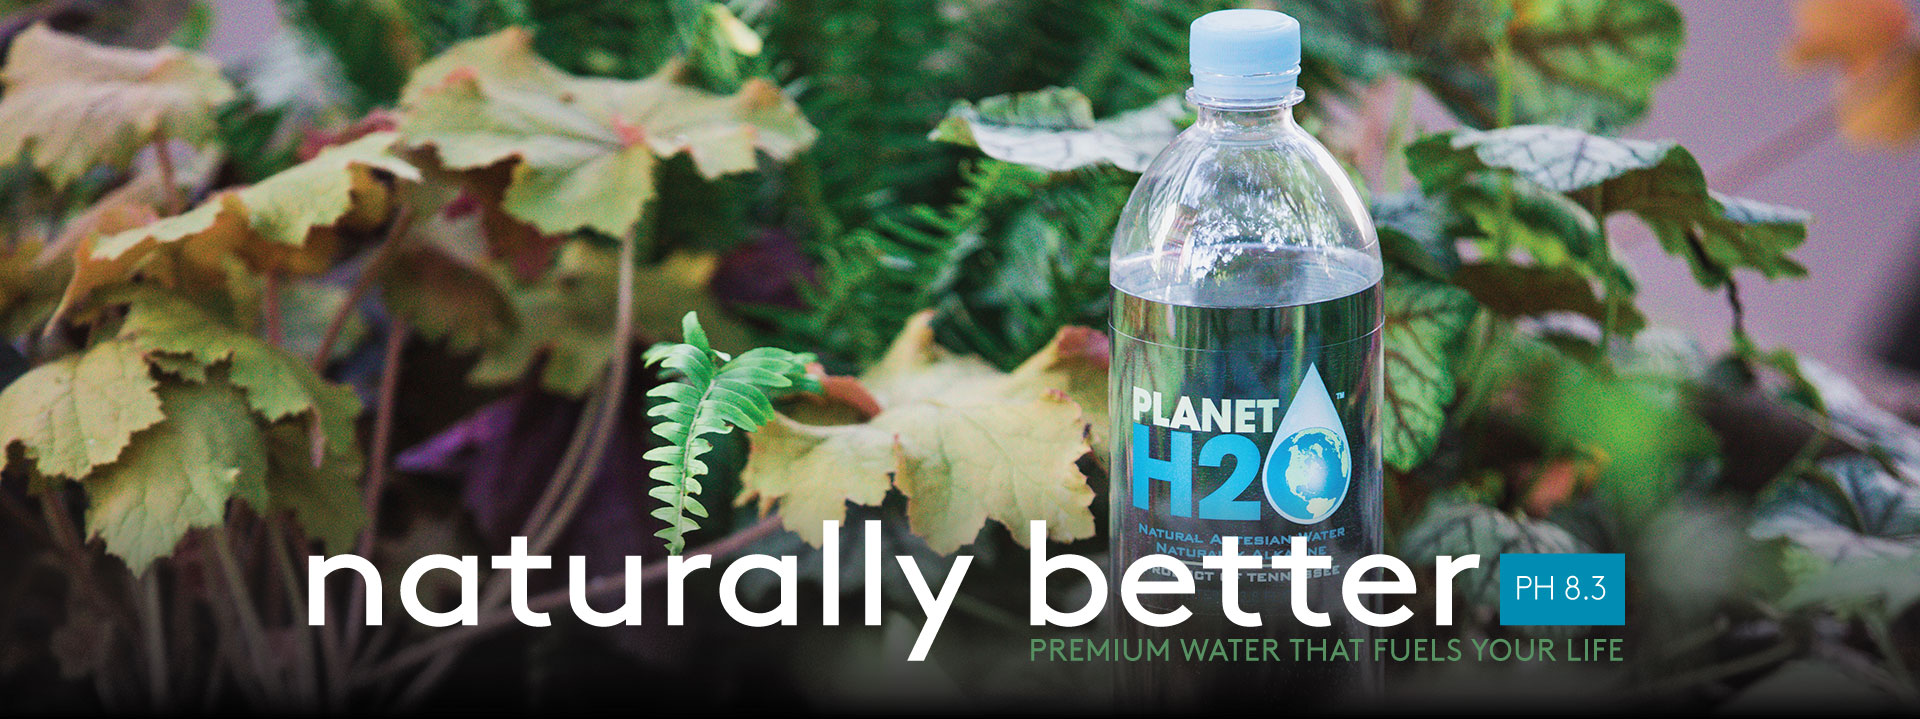 Premium Water that Fuels your life PH8.3